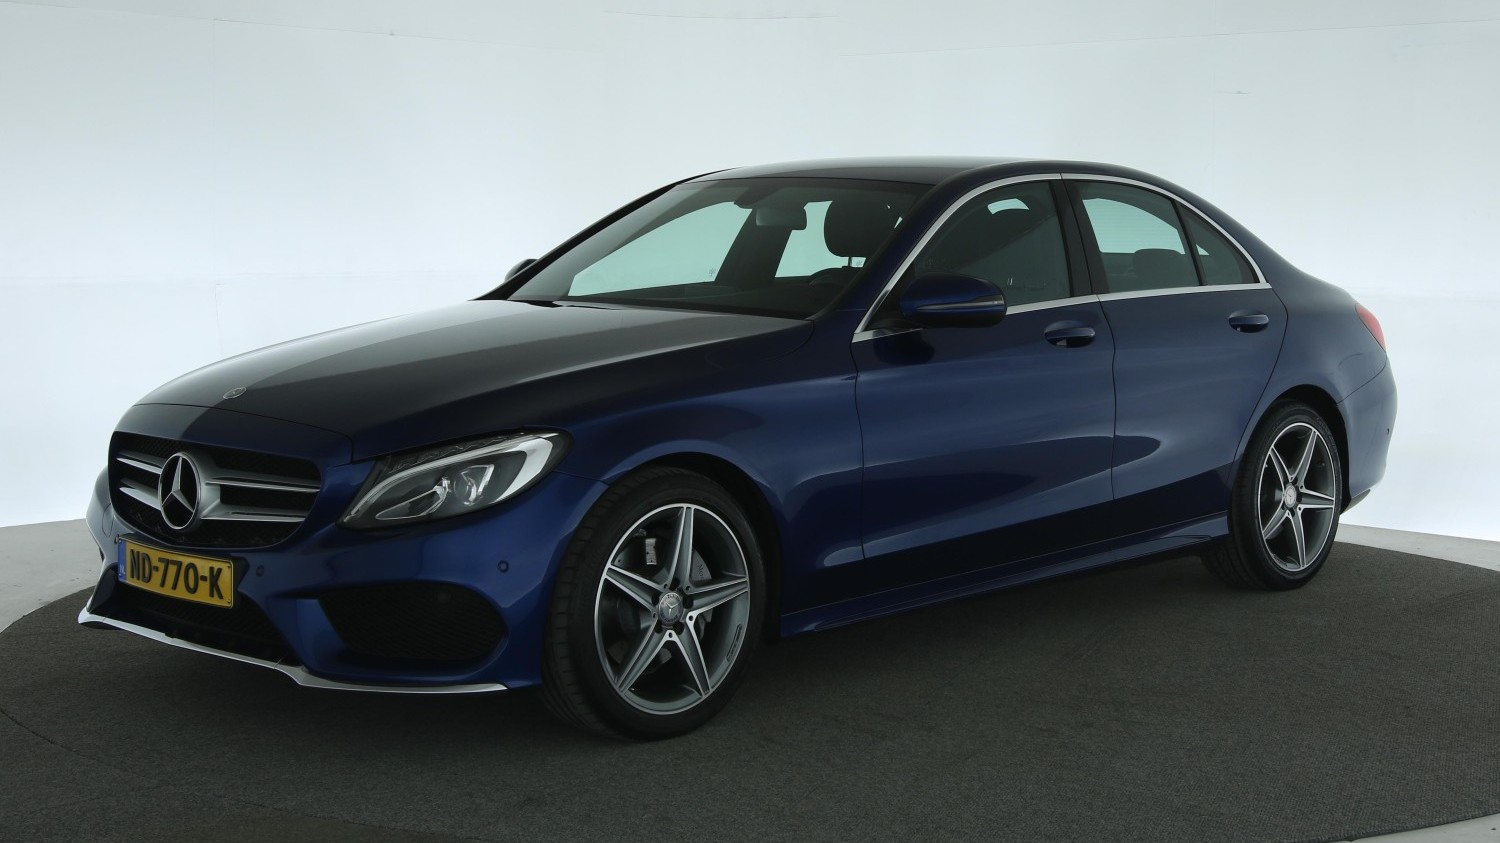 Mercedes-Benz C-klasse Sedan 2017 ND-770-K 1